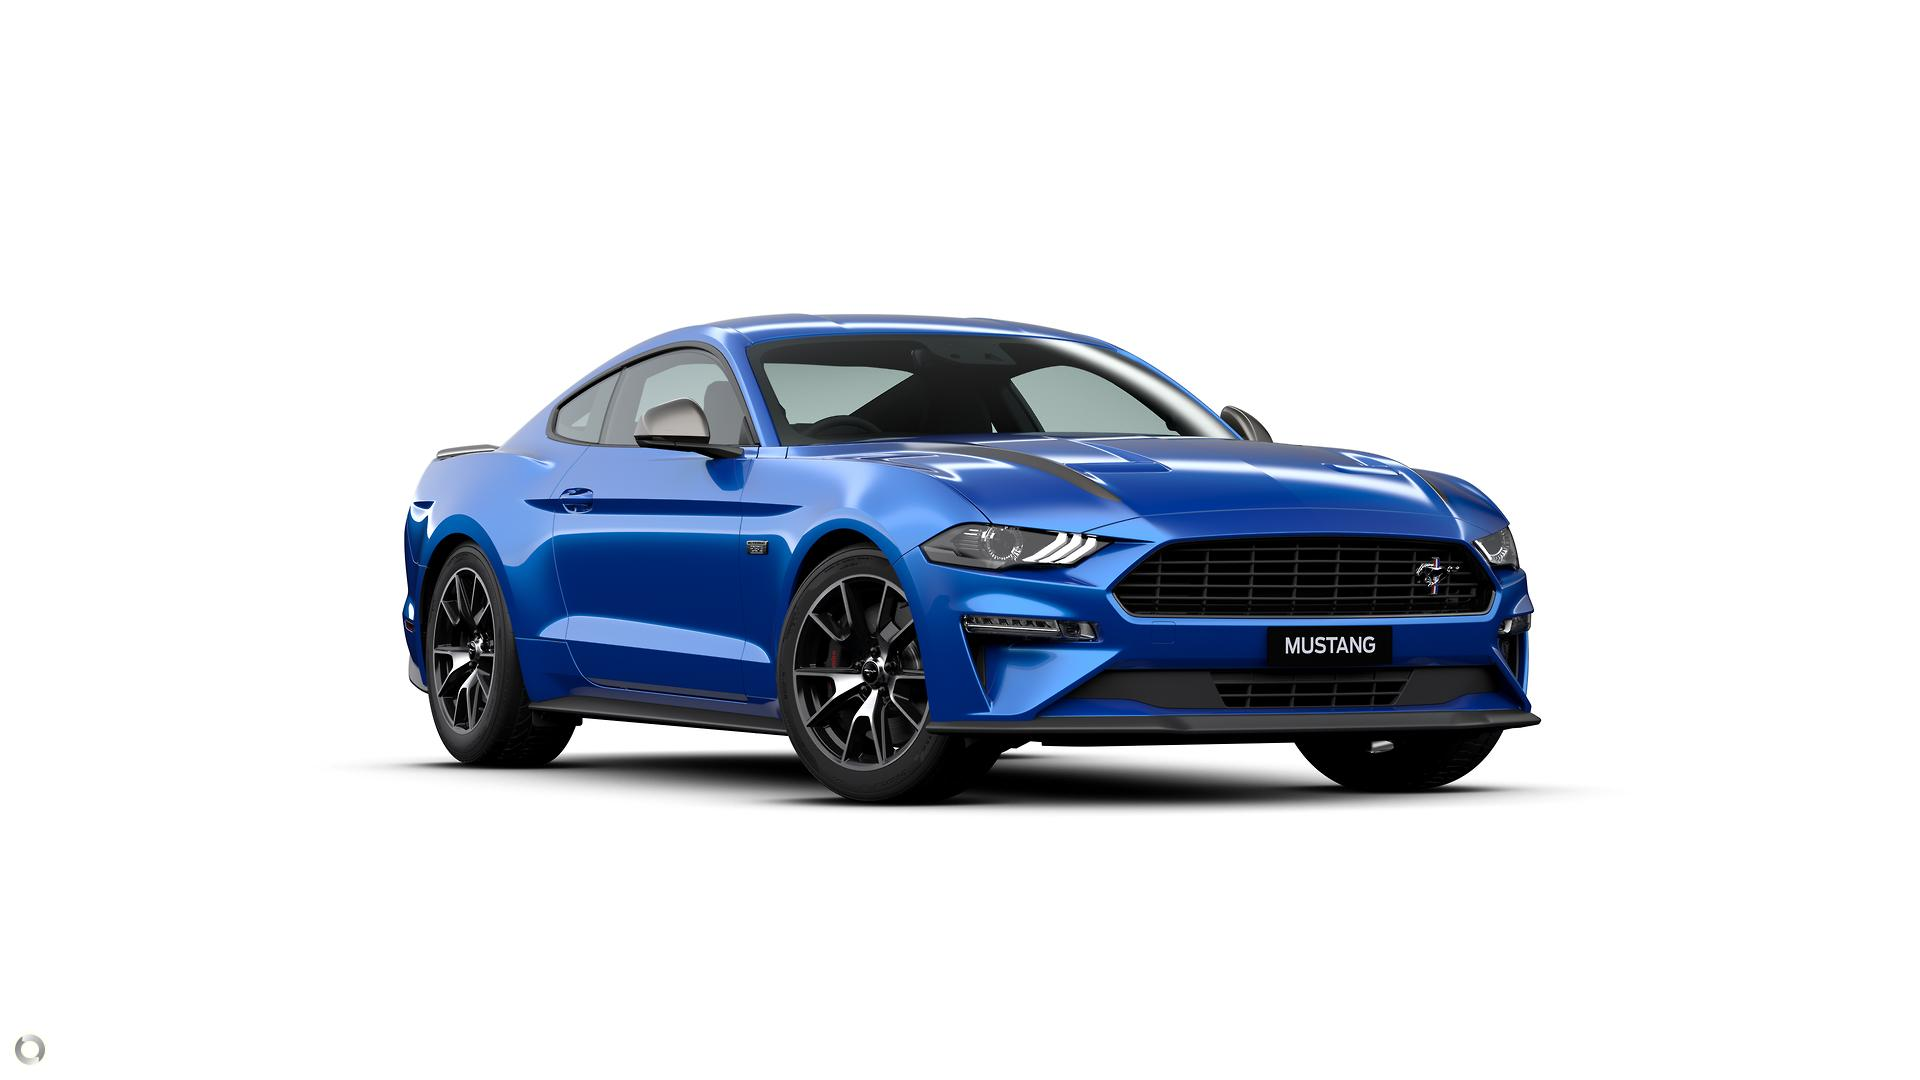 2019 Ford Mustang FN